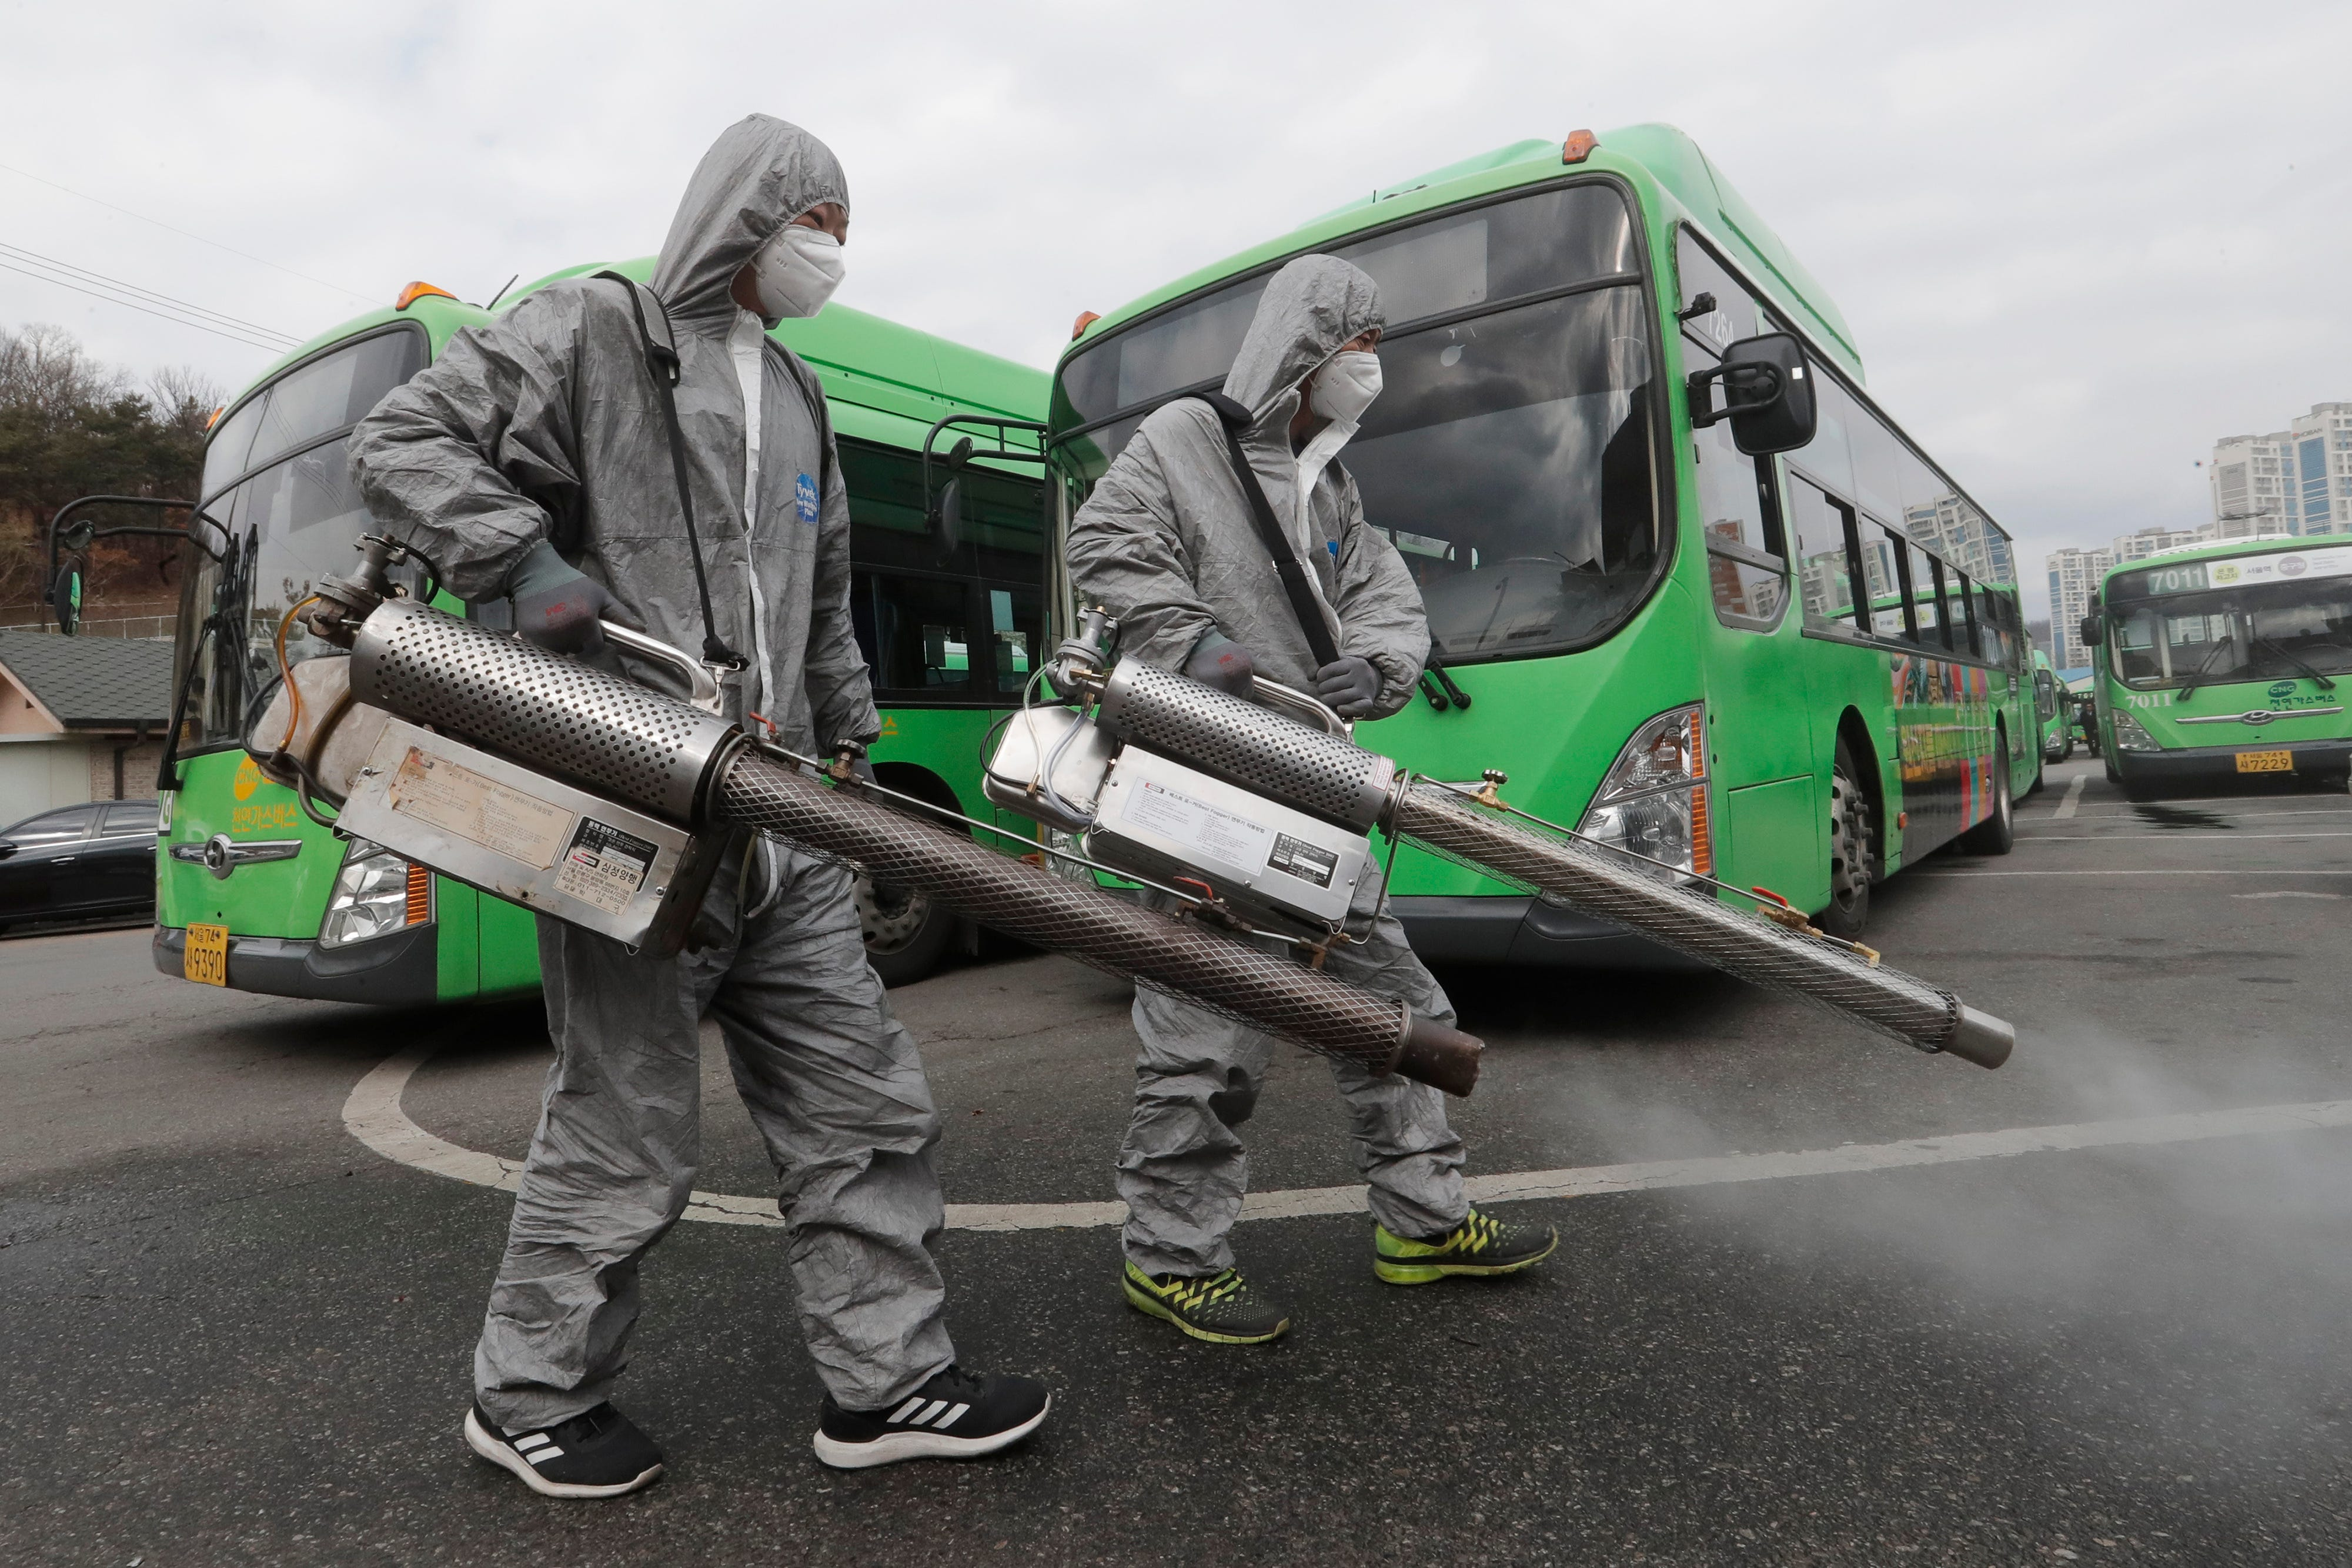 Slide 100 of 113: Workers wearing protective suits spray disinfectant as a precaution against the coronavirus at a bus garage in Seoul, South Korea, Feb. 26, 2020. The number of new virus infections in South Korea jumped again Wednesday and the U.S. military reported its first case among its soldiers based in the Asian country, with his case and many others connected to a southeastern city with an illness cluster.